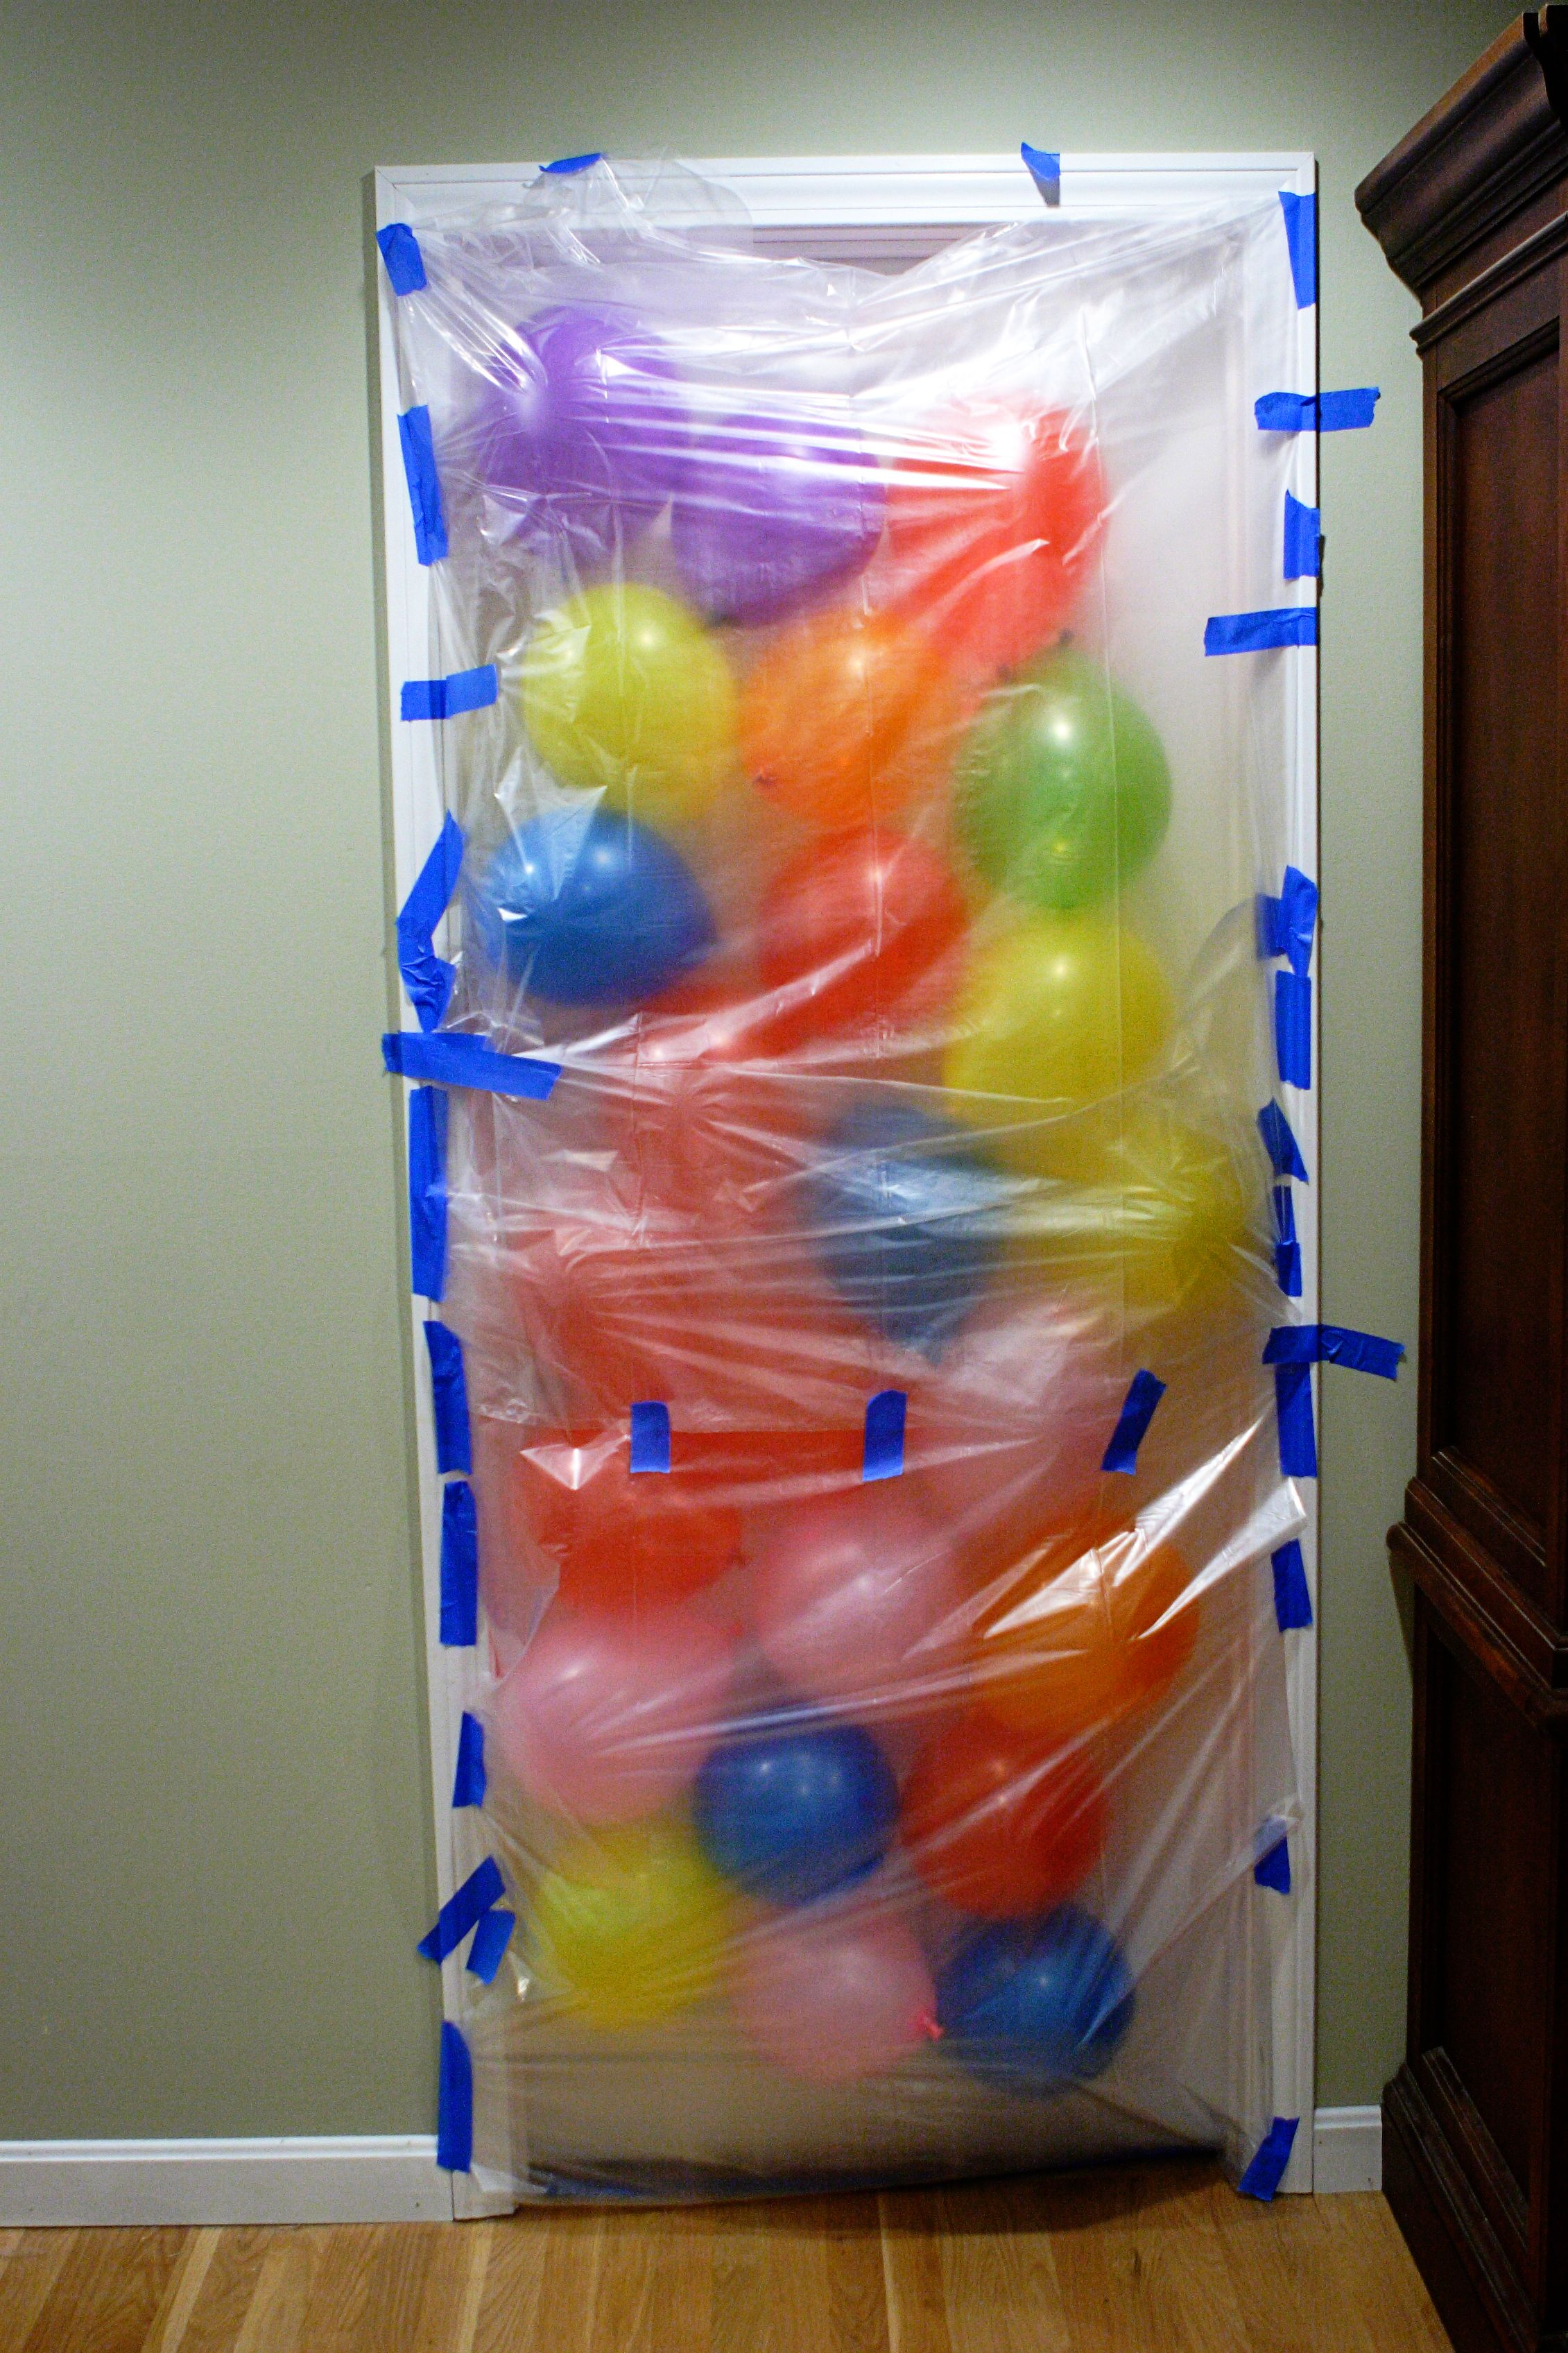 Two large garbage bags + painter's tape + a bunch of balloons = birthday morning balloon avalanche  awesomeness